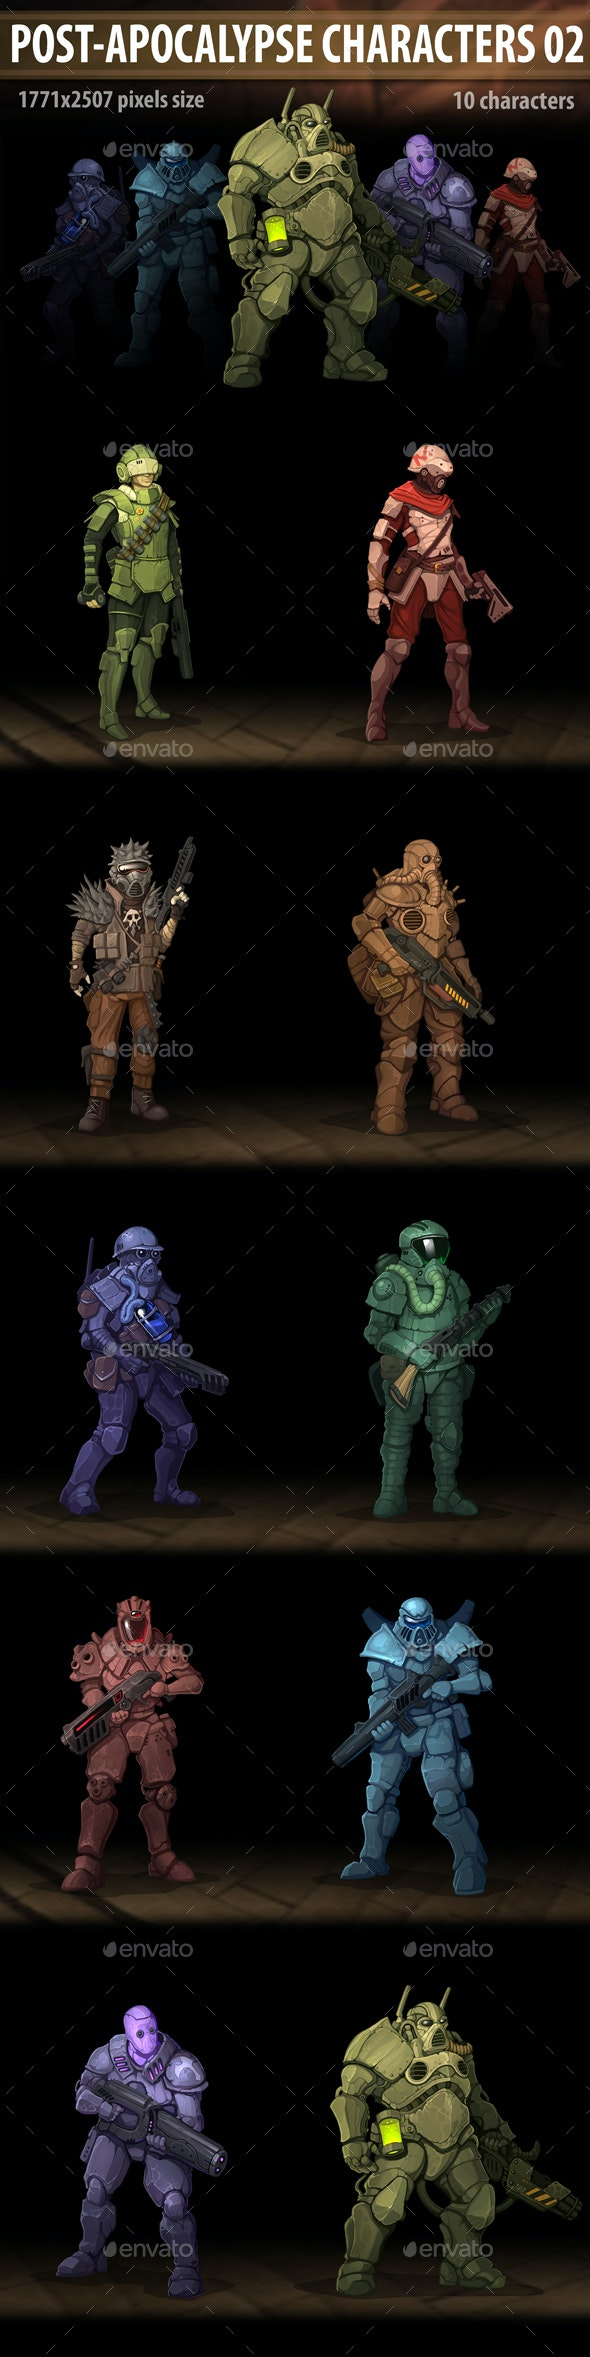 Post Apocalypse Characters 02 - Miscellaneous Game Assets